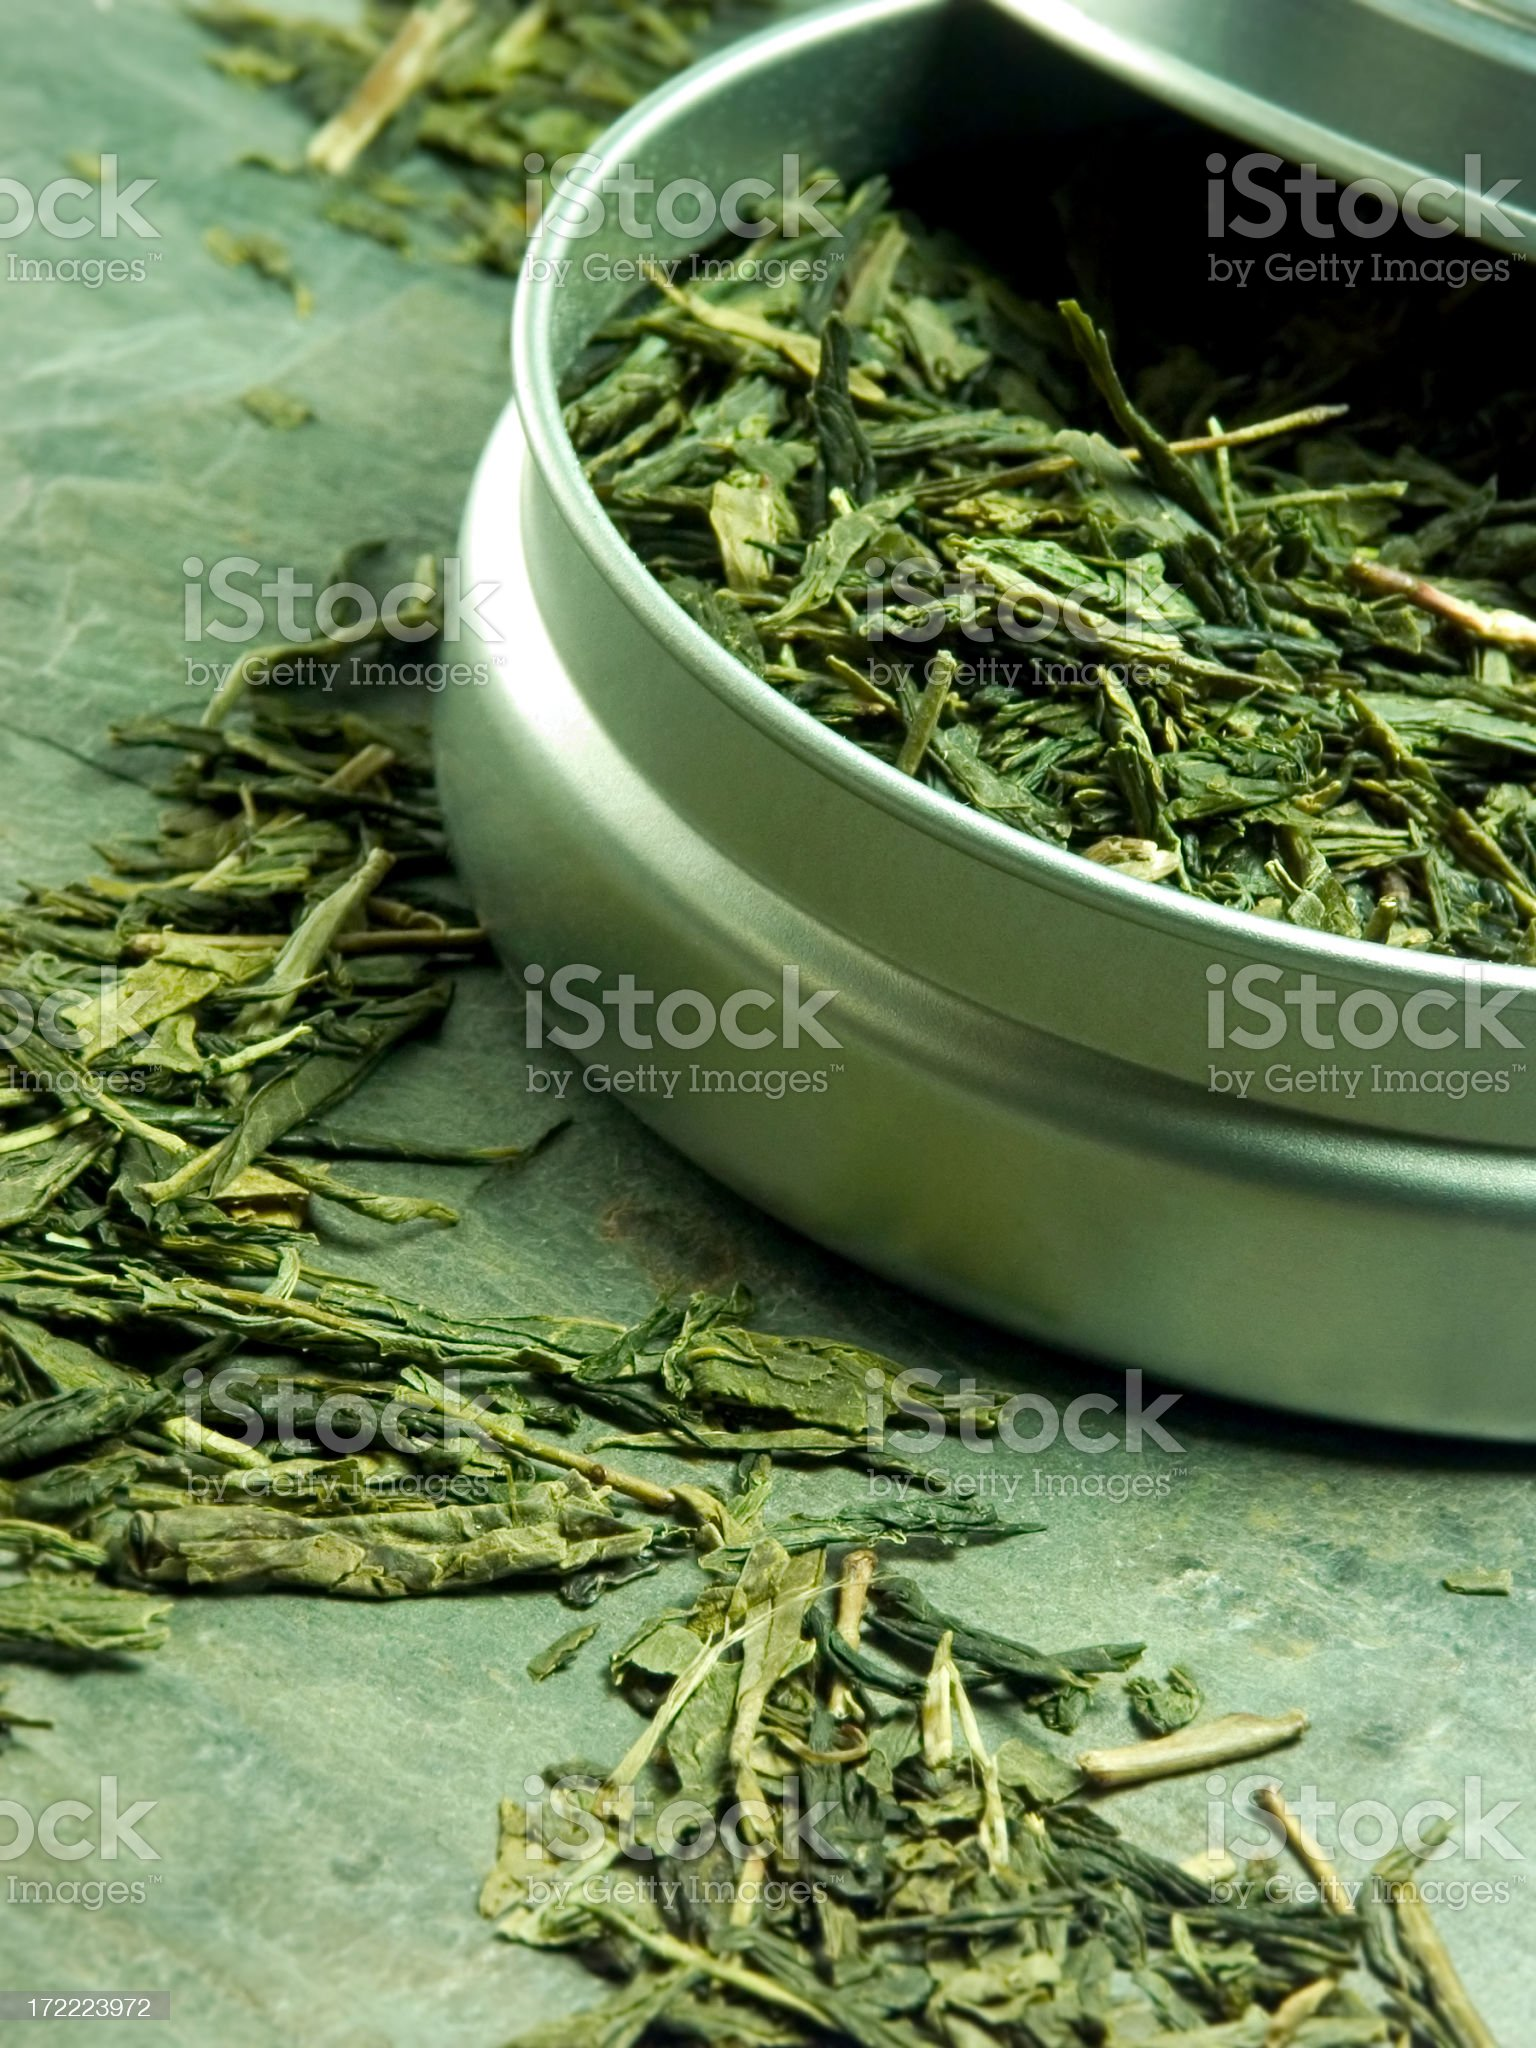 Various tea leaves being ground up royalty-free stock photo